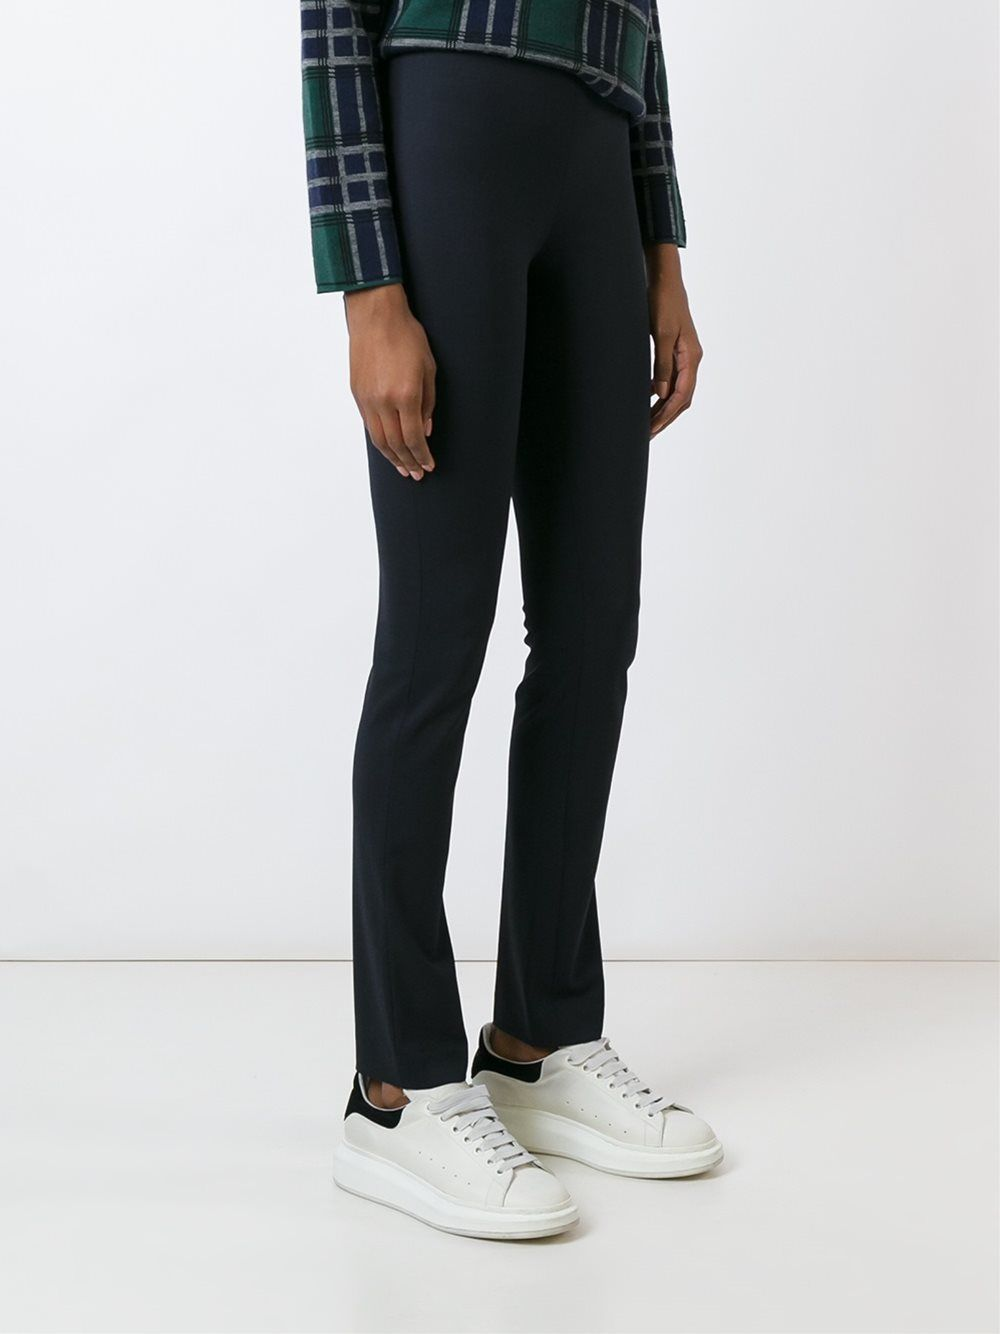 Hache skinny trousers